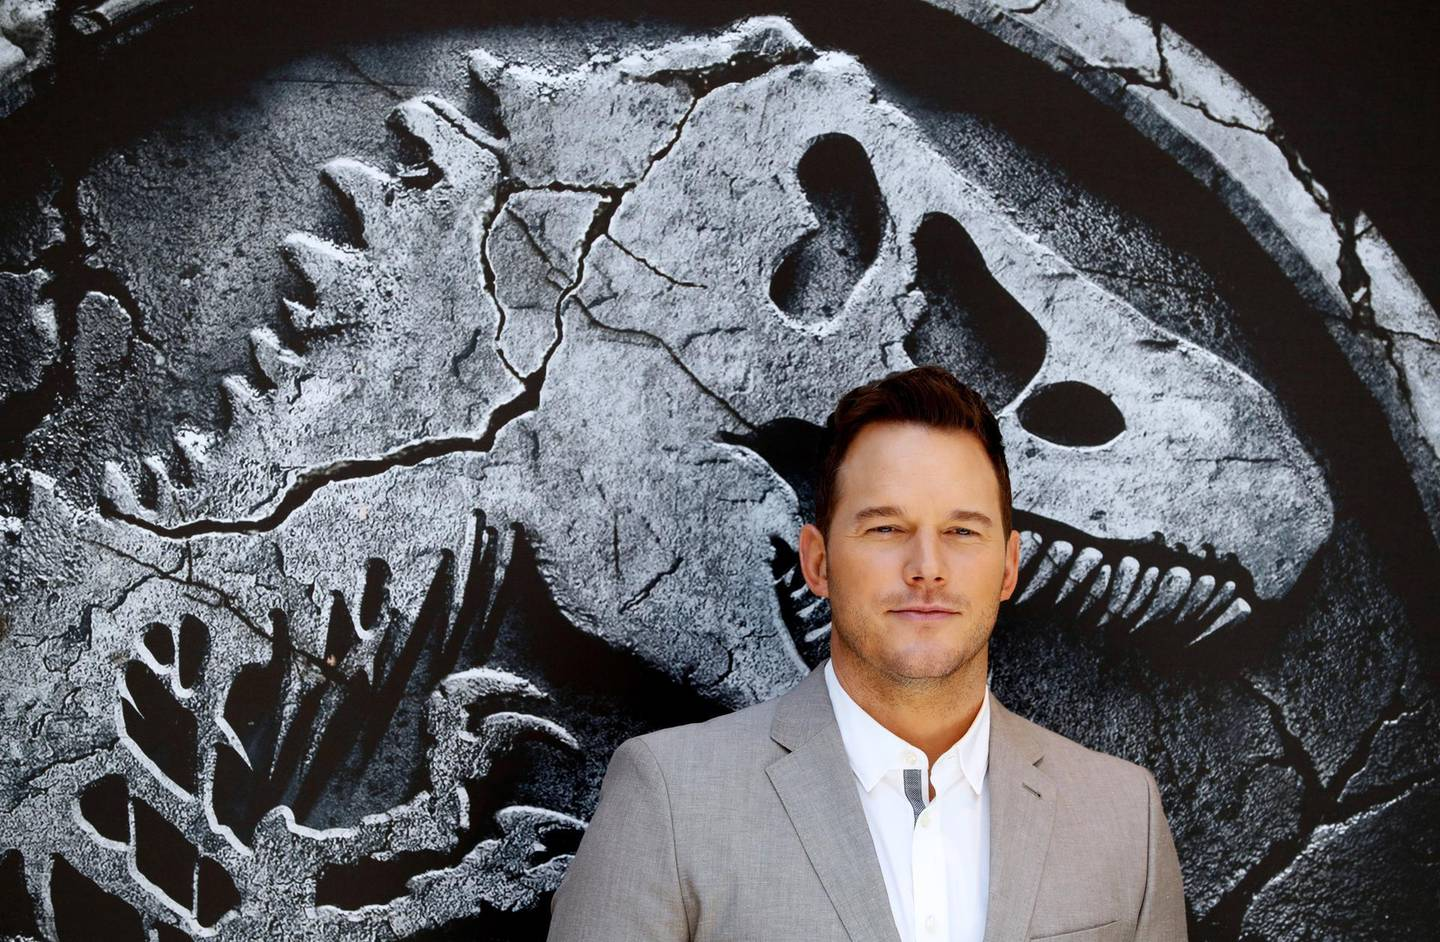 epa06755408 US actor and cast member Chris Pratt poses for photographers during the presentation of the movie 'Jurassic World: Fallen Kingdom' in Madrid, Spain, 22 May 2018. The movie opens in Spanish cinemas on 07 June.  EPA/Emilio Naranjo